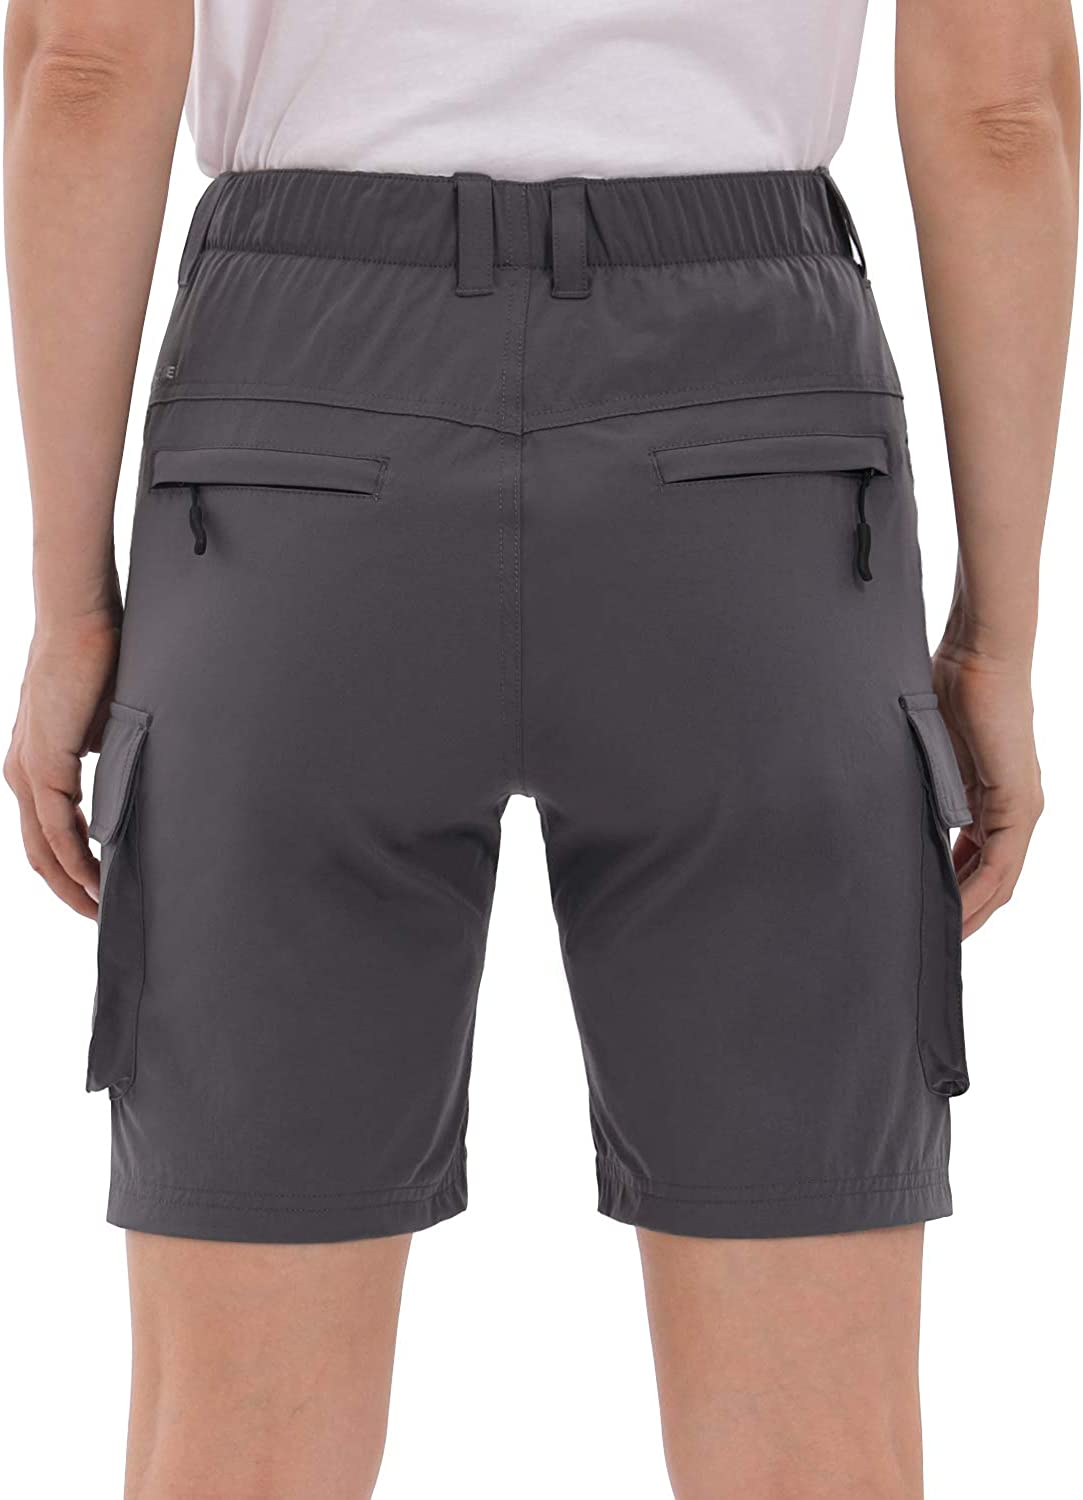 Loose-Fit Hiking Outdoor Shorts Graphite Grey XL UPSOWER Womens Hiking Cargo Shorts Quick Drying Lightweight Shorts with Pockets